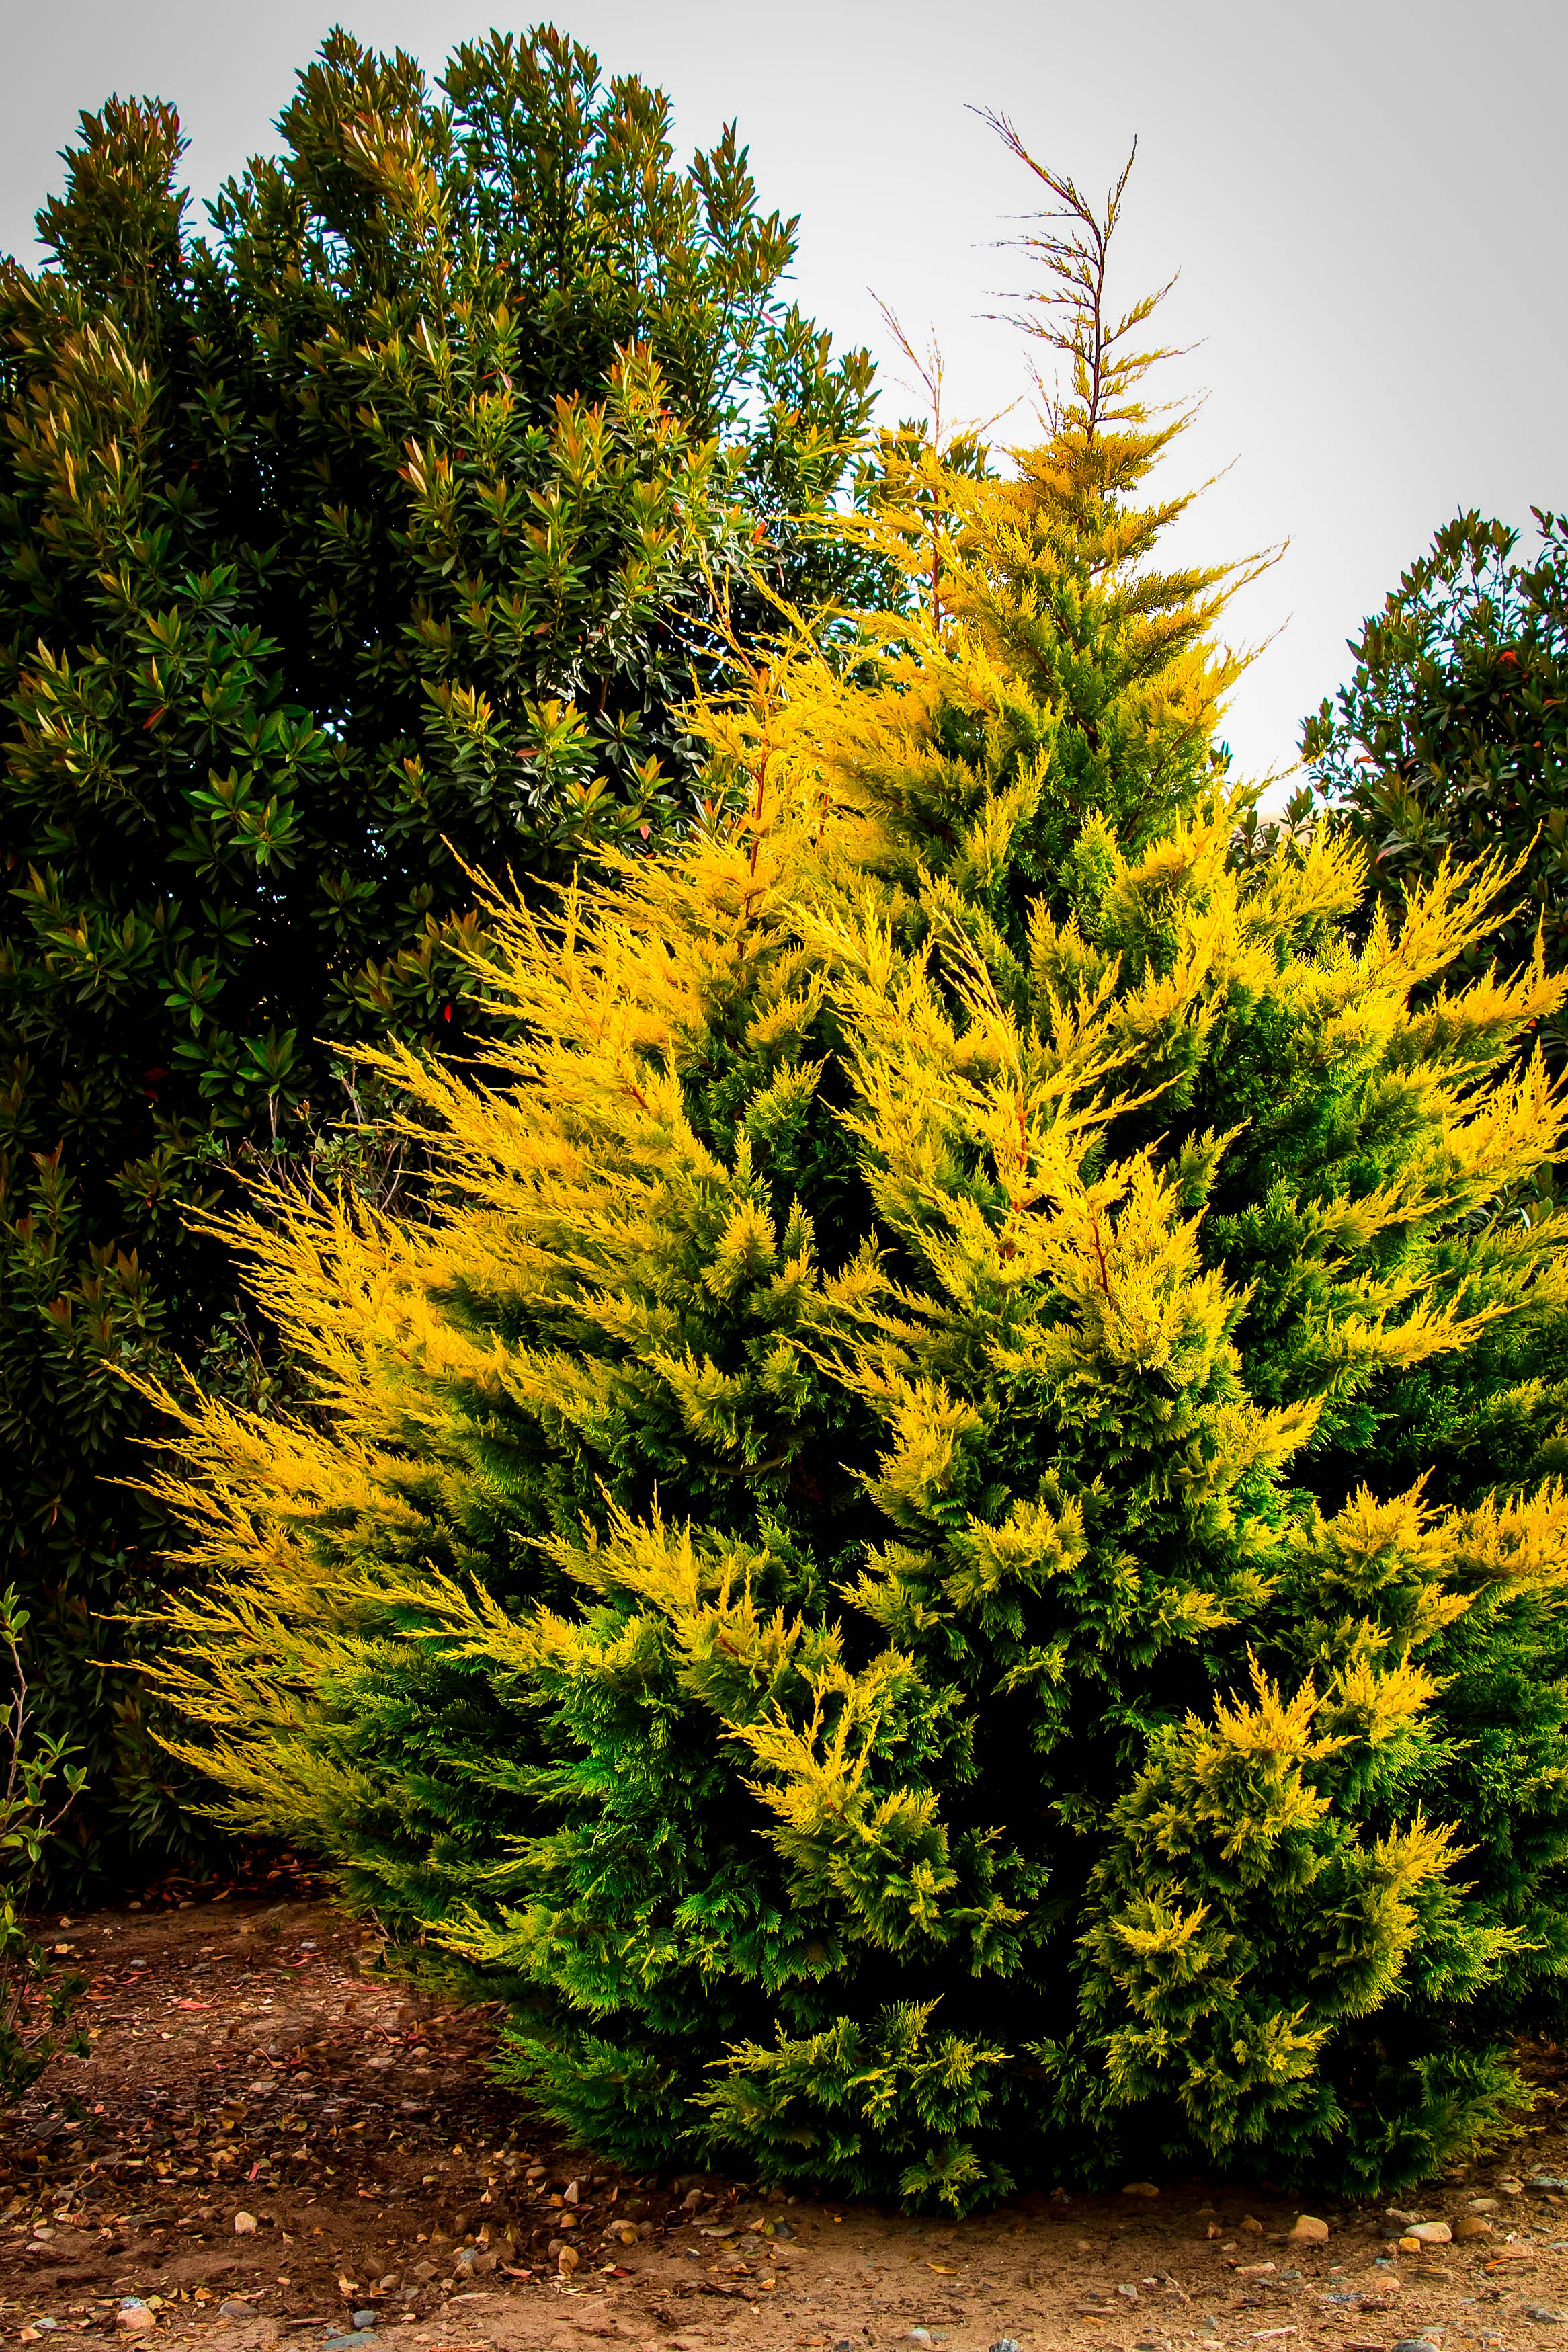 Trees Of Santa Cruz County Nyssa Sylvatica: Gold Rider Leyland Cypress Trees For Sale